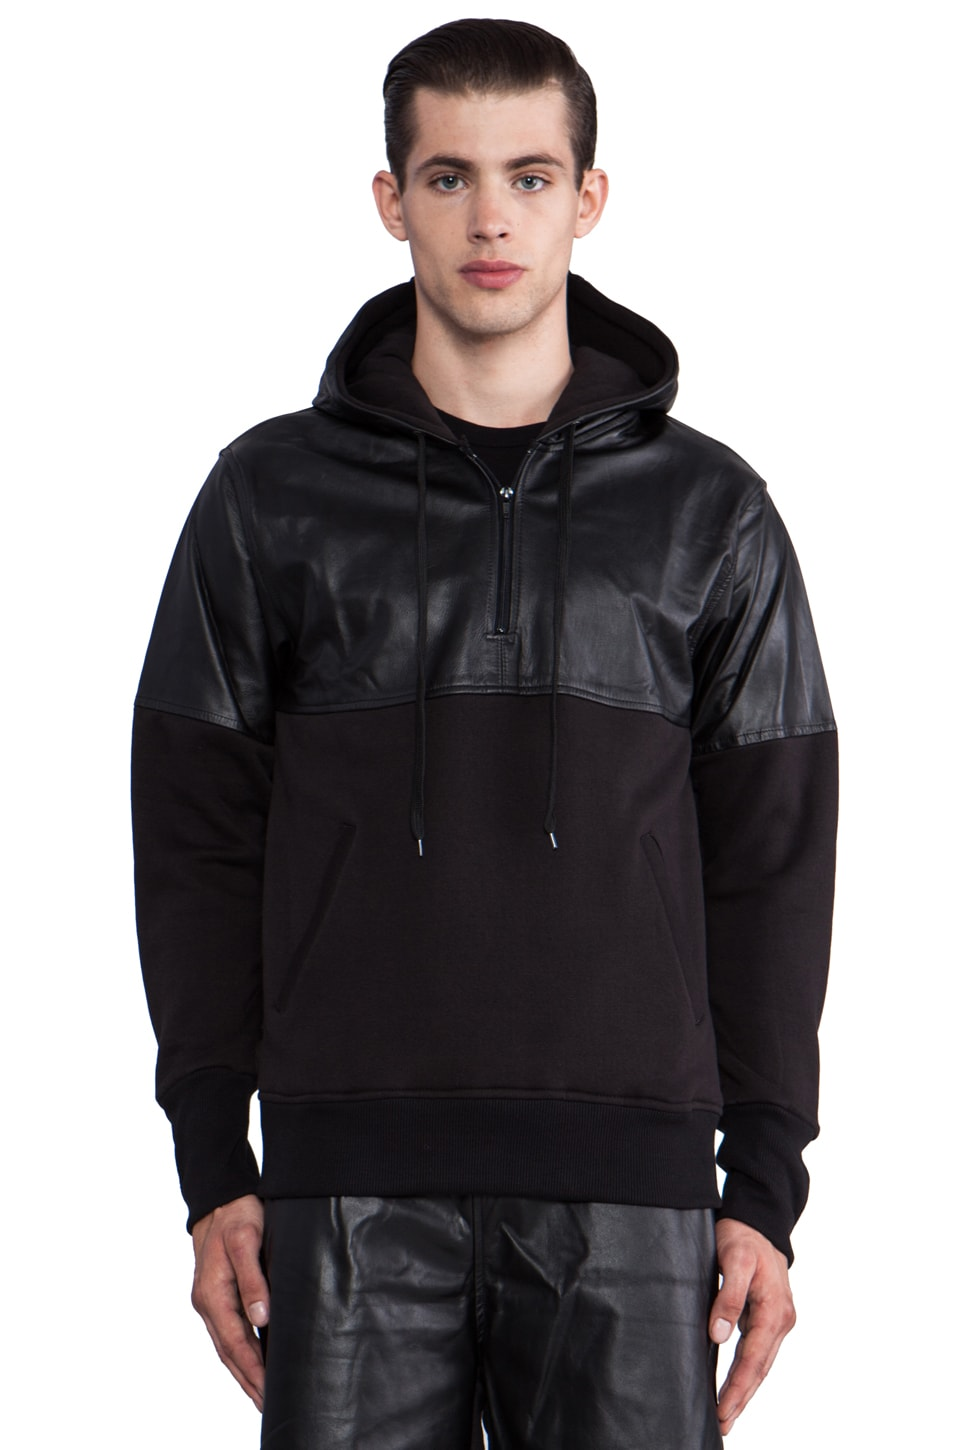 Iridium Leather Detailed Hoody in Black